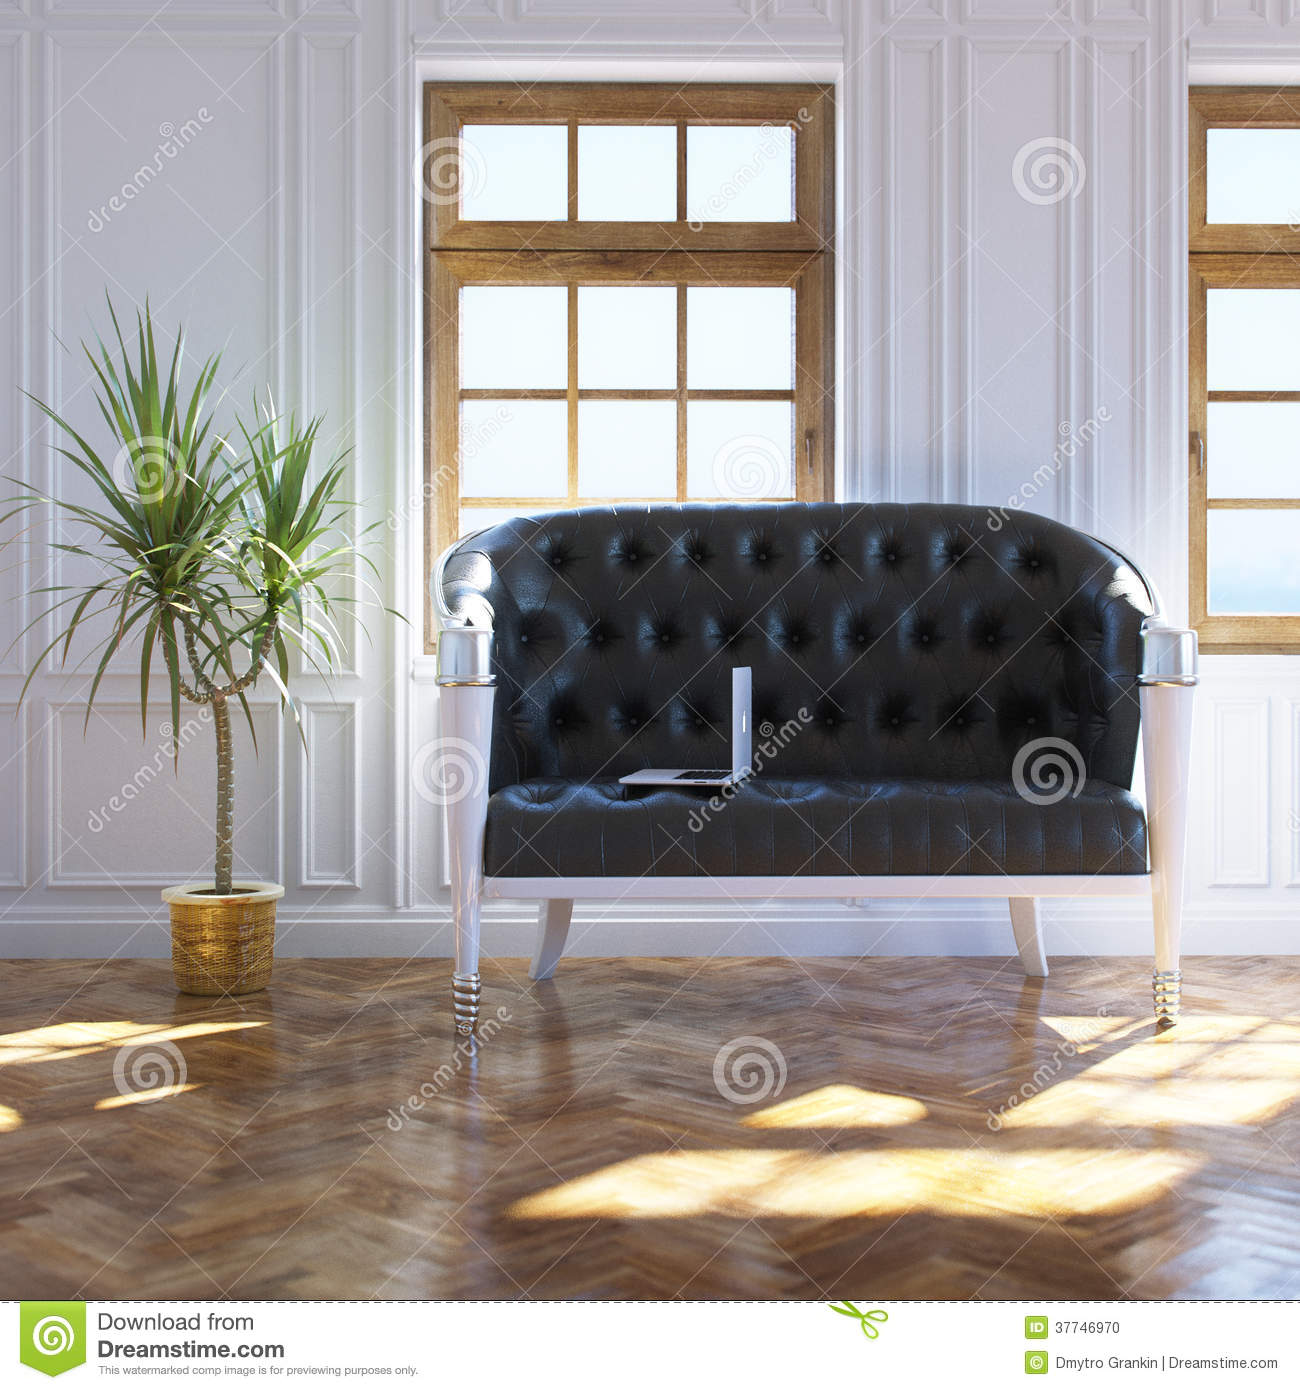 Vintage window interior design royalty free stock photo Vintage interior